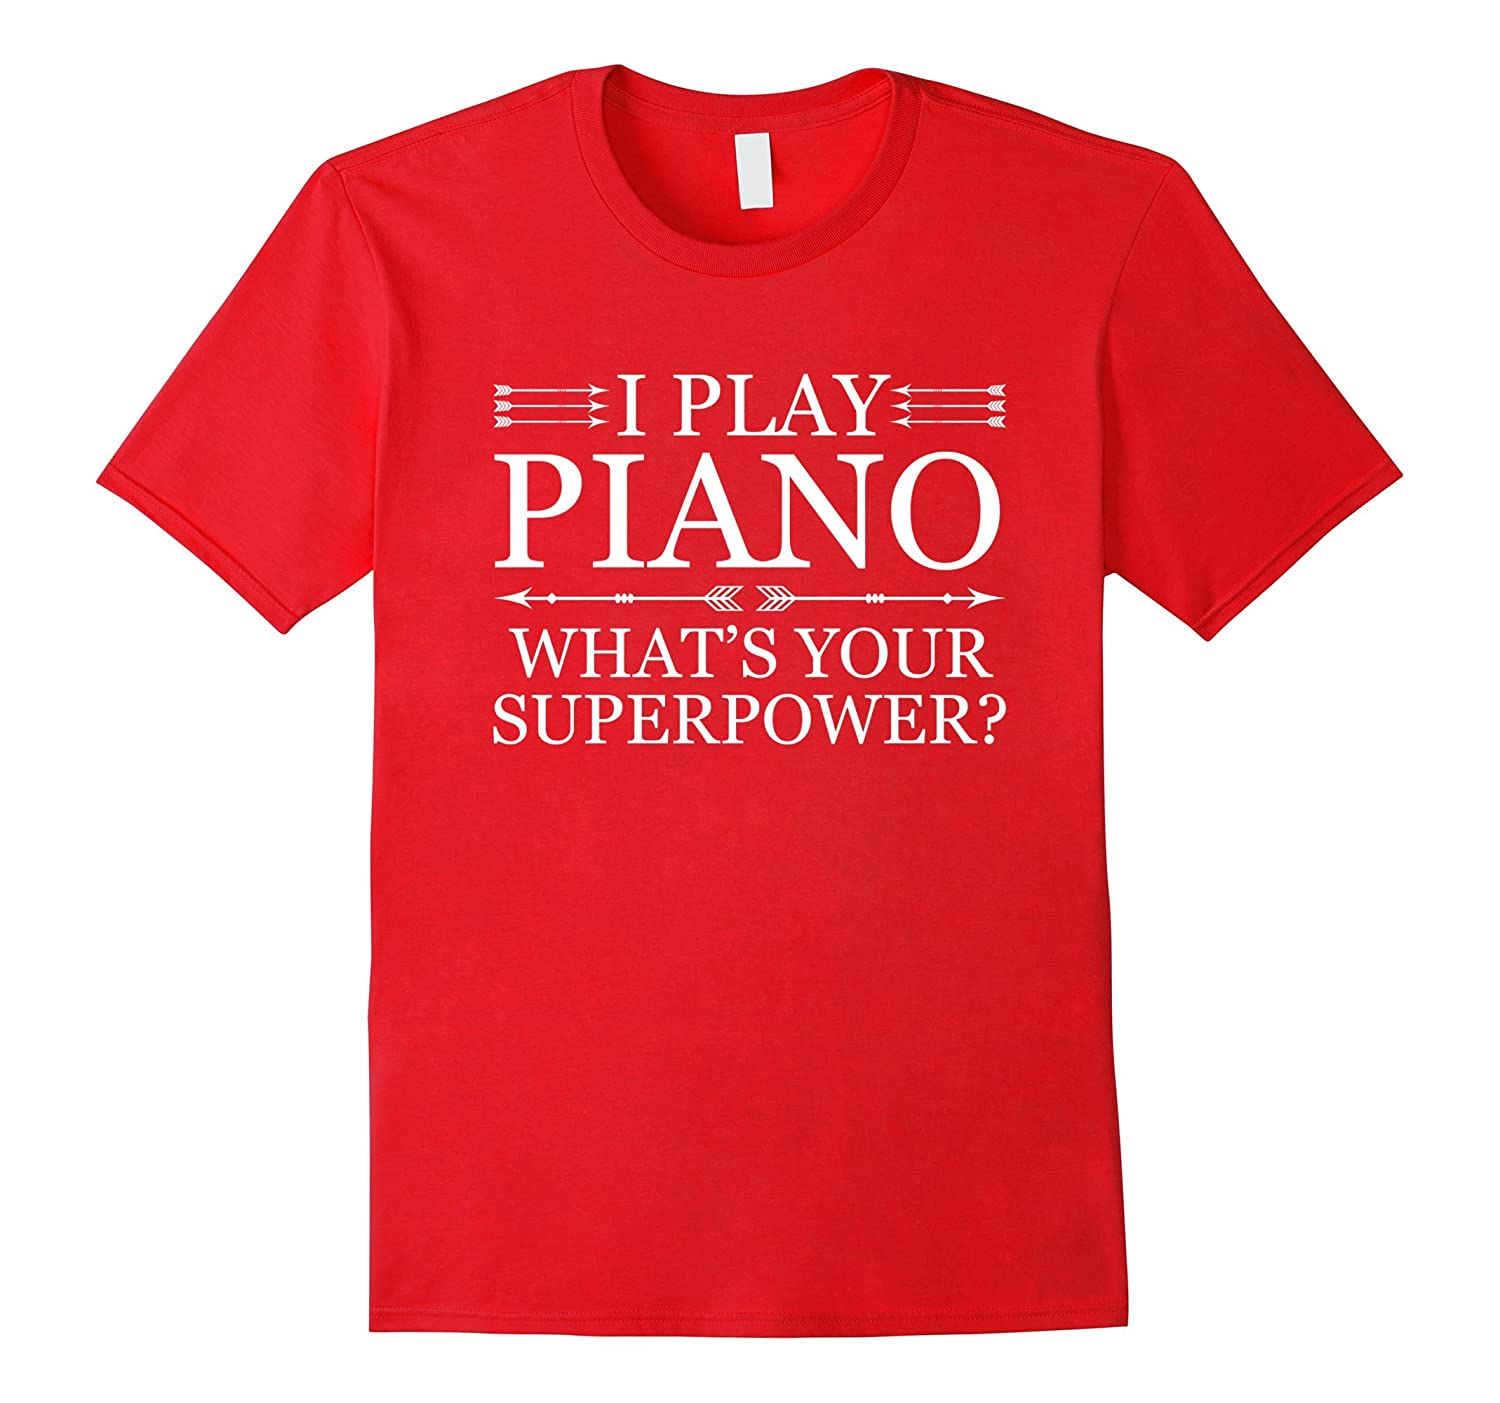 I Play Piano What's Your Superpower Shirts - Piano T-Shirts-FL